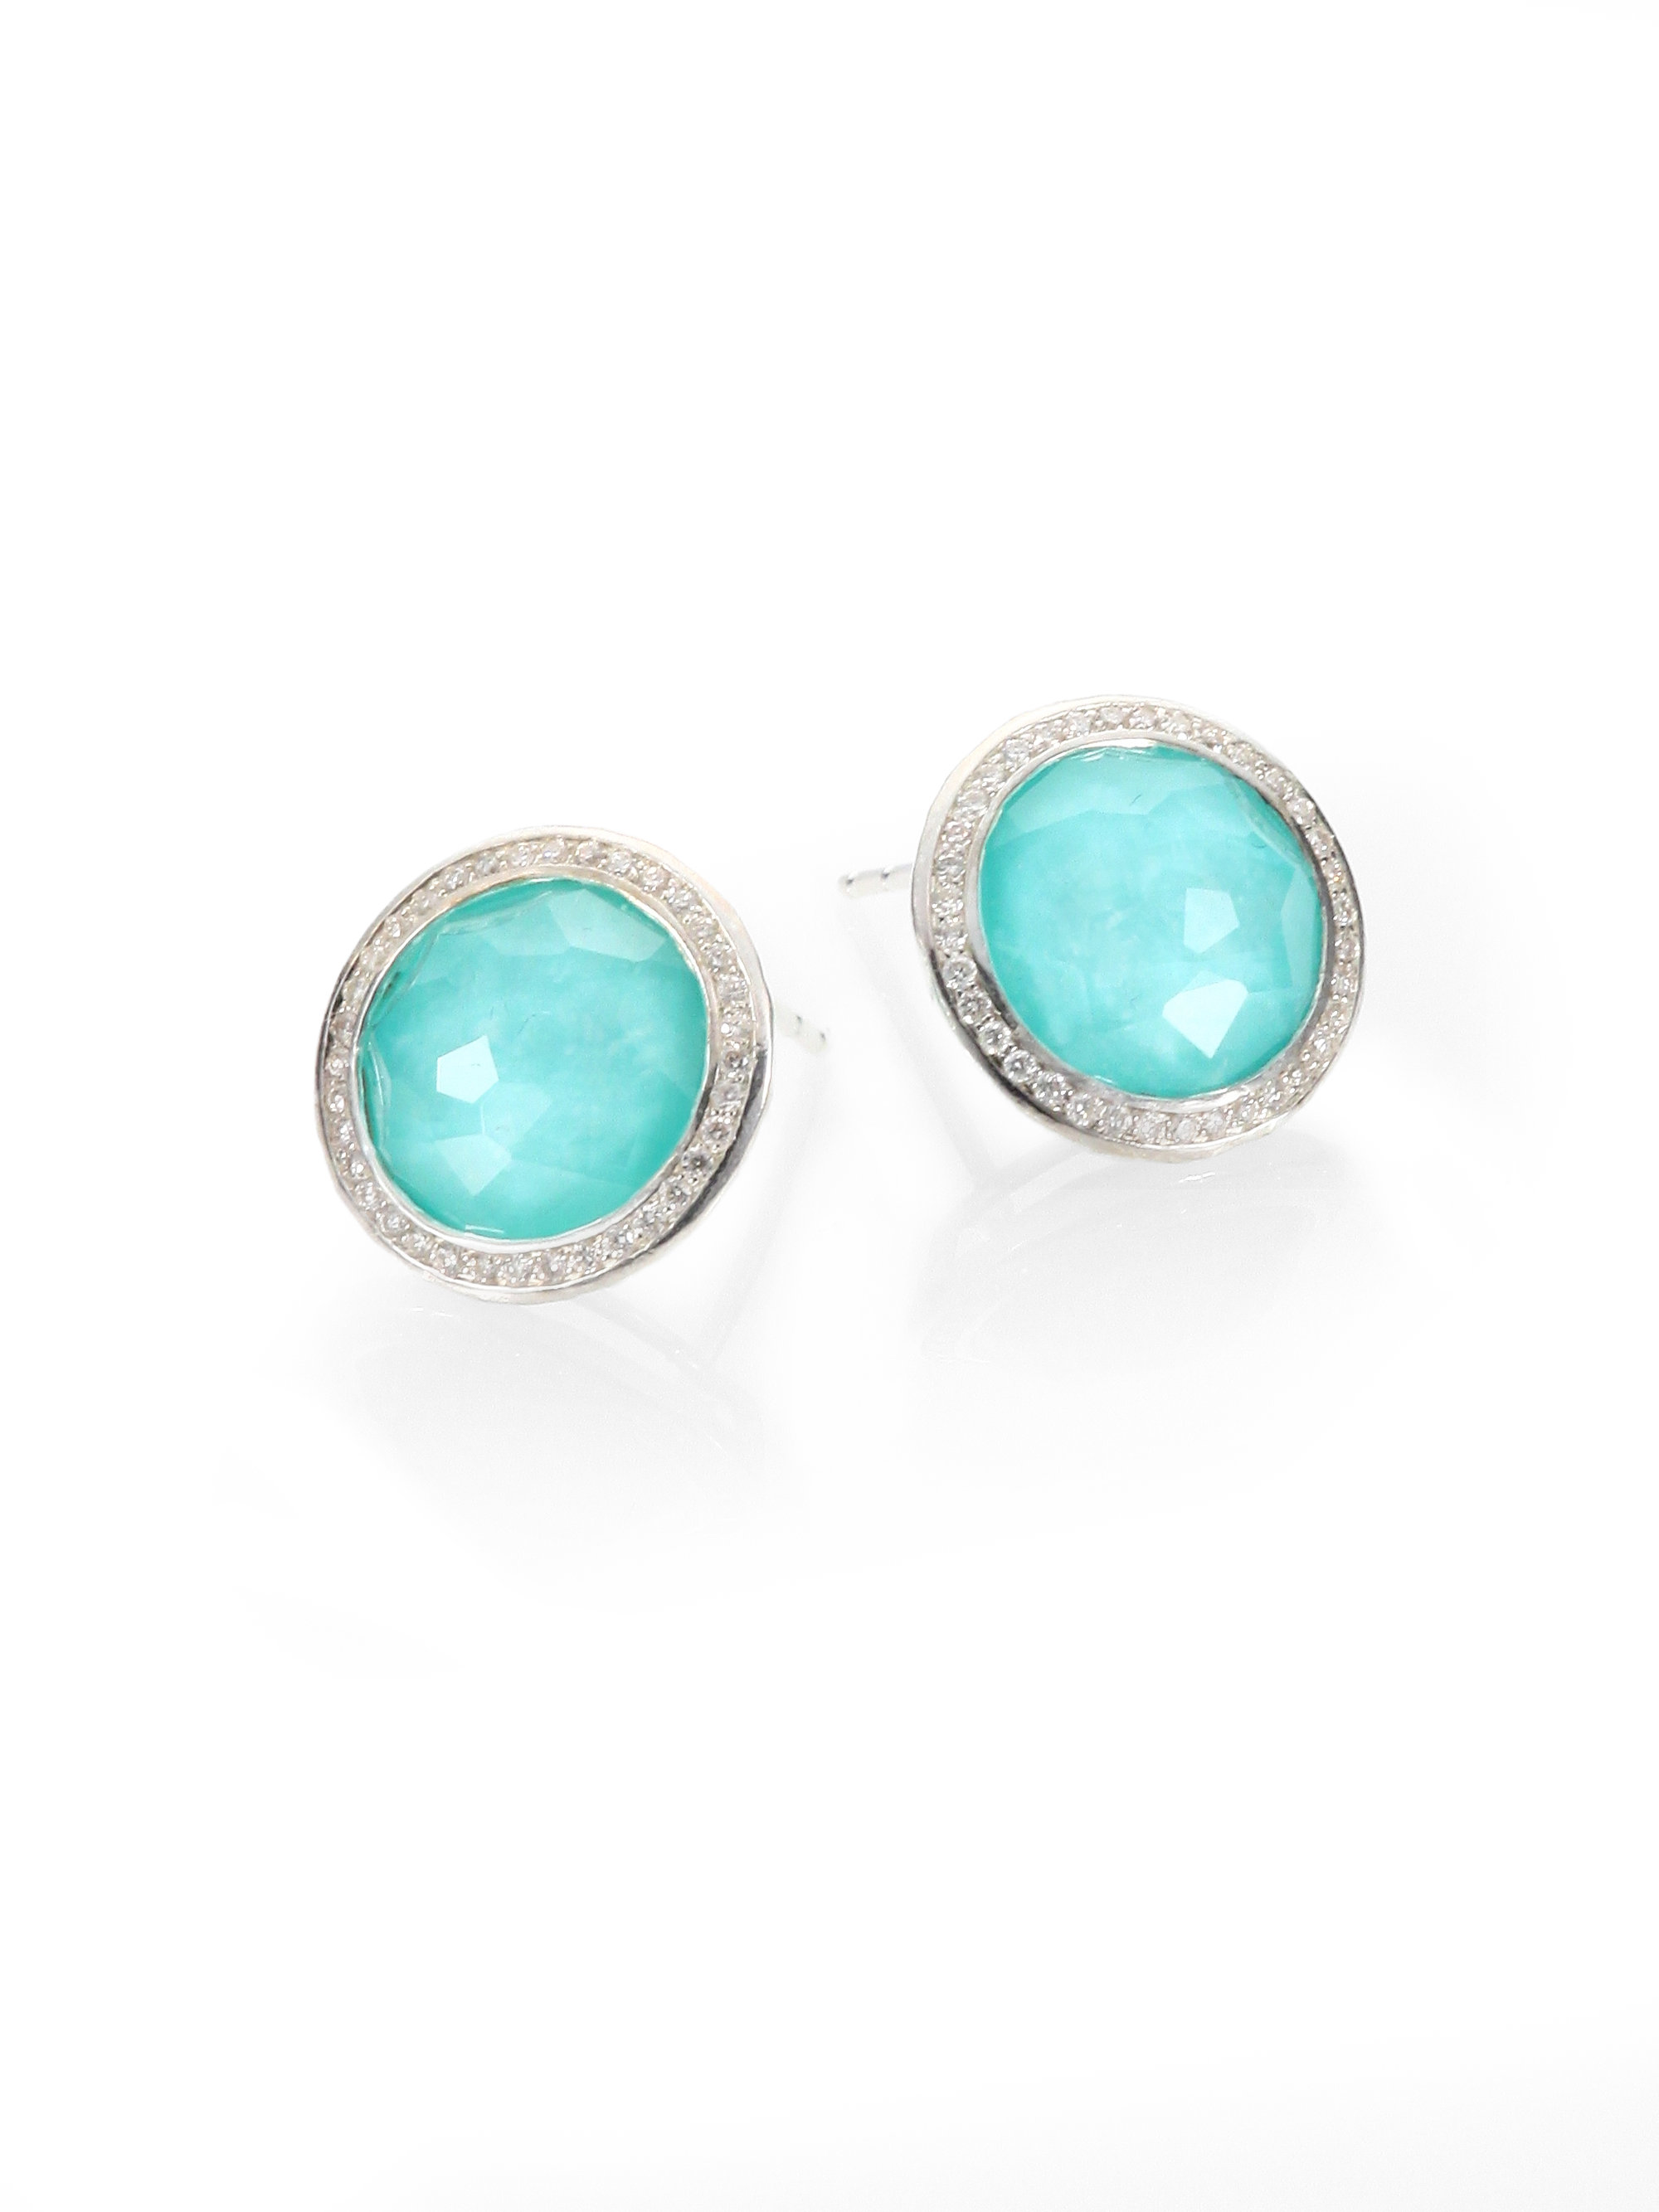 pave lyst frances earrings jude gold jewelry yellow fullscreen stud lisse diamond view turquoise